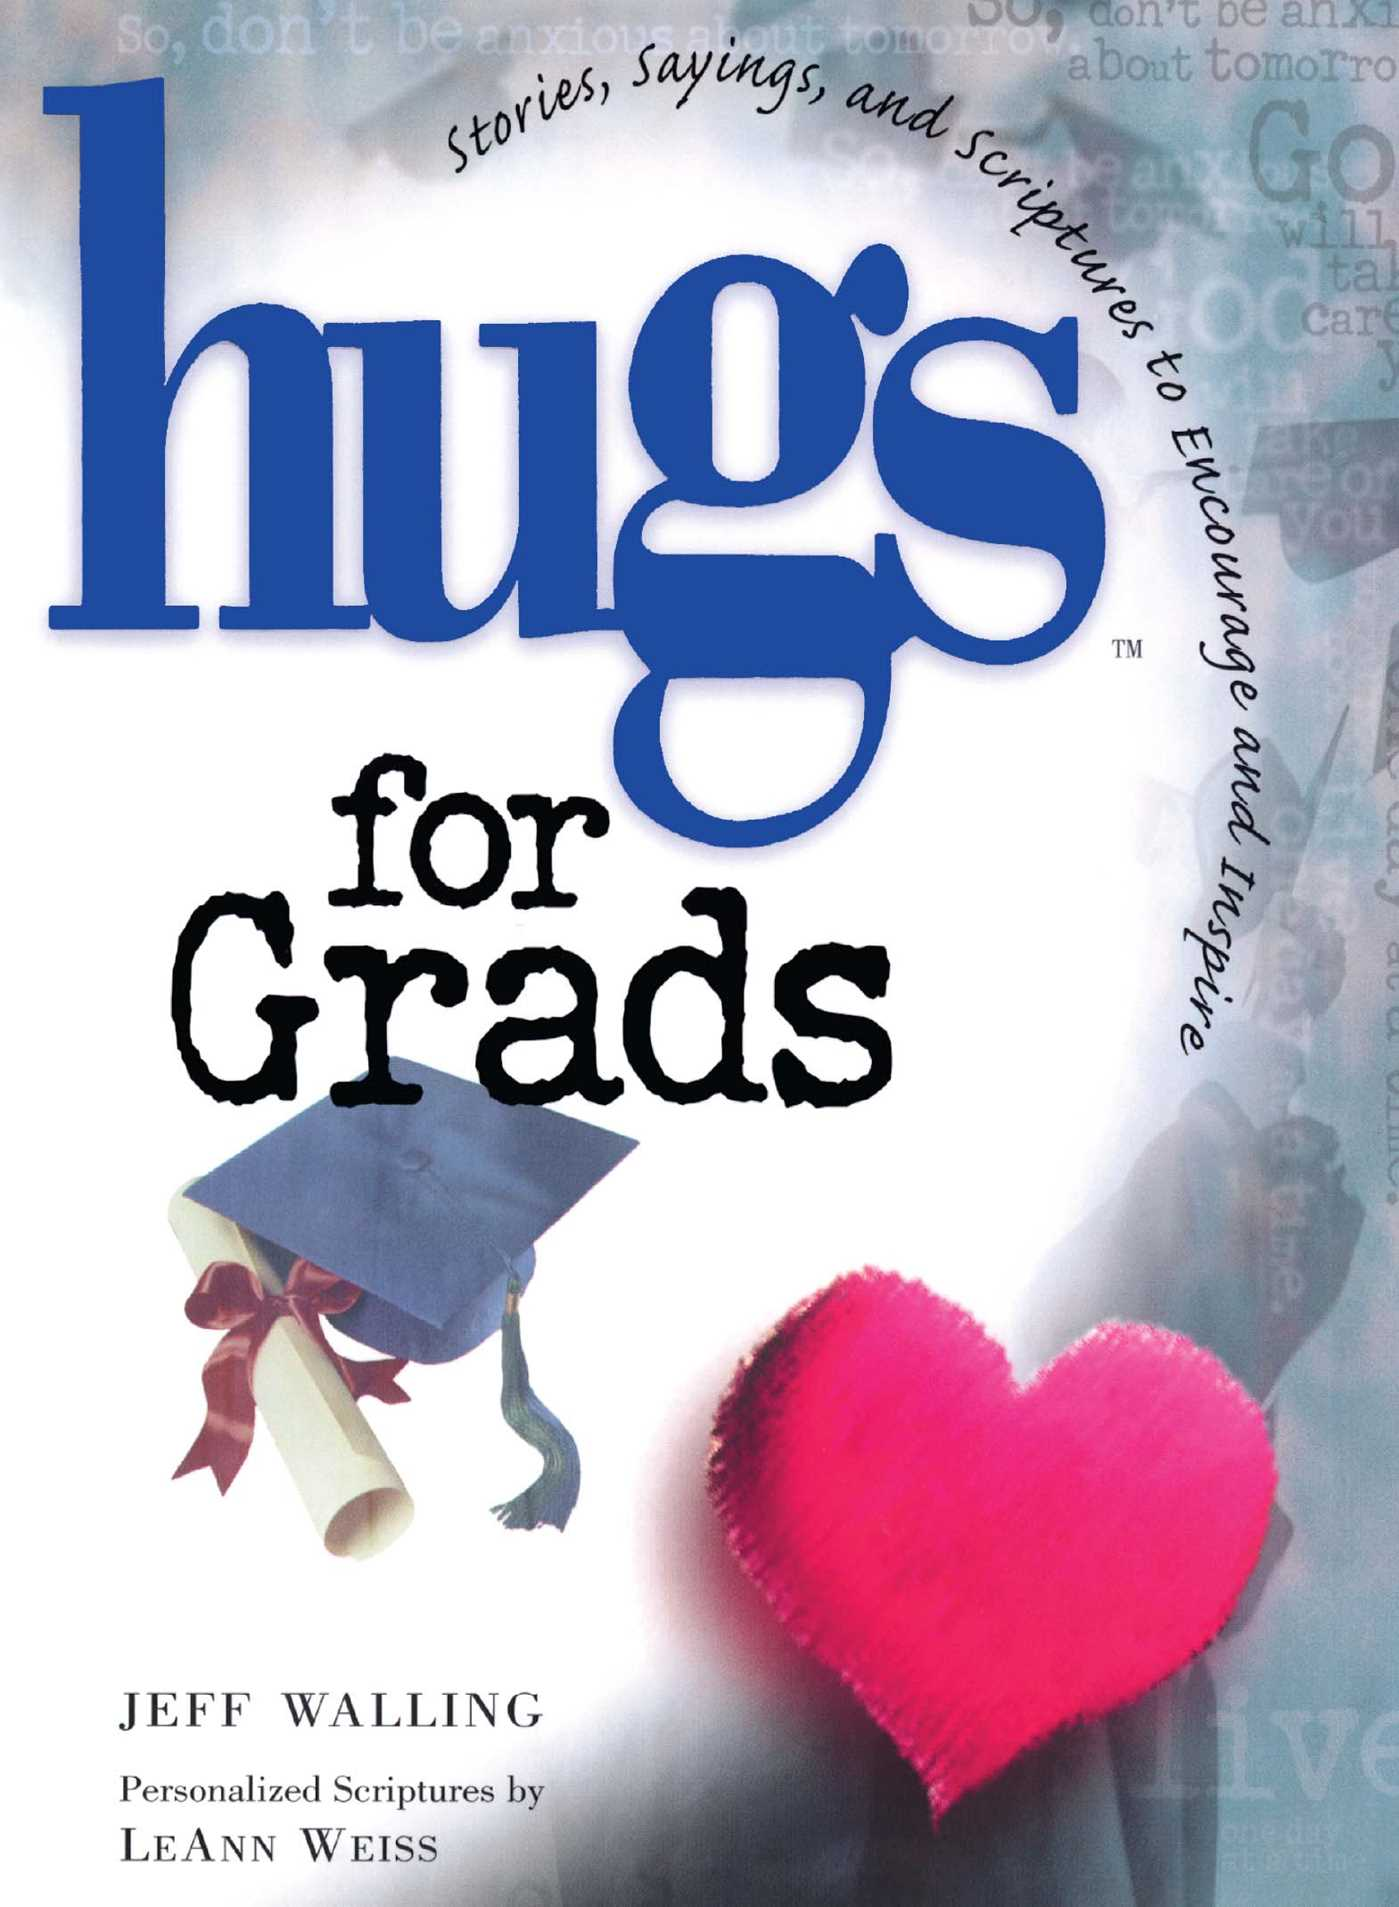 Hugs-for-grads-9781476751429_hr